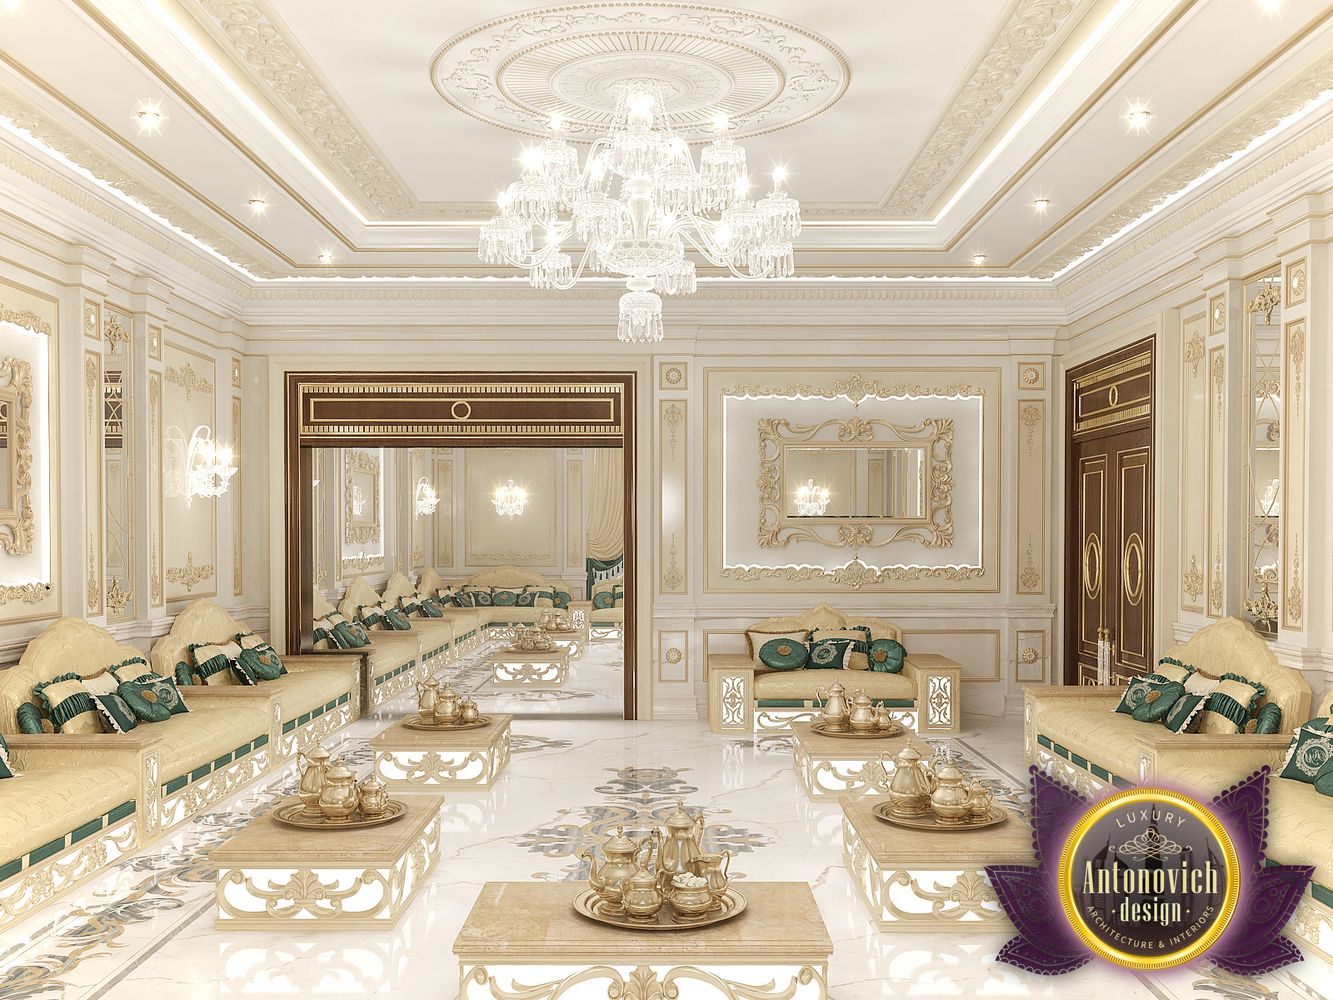 Luxury Interior Designs: Nigeiradesign: Arabic Majlis Interior Design From Luxury